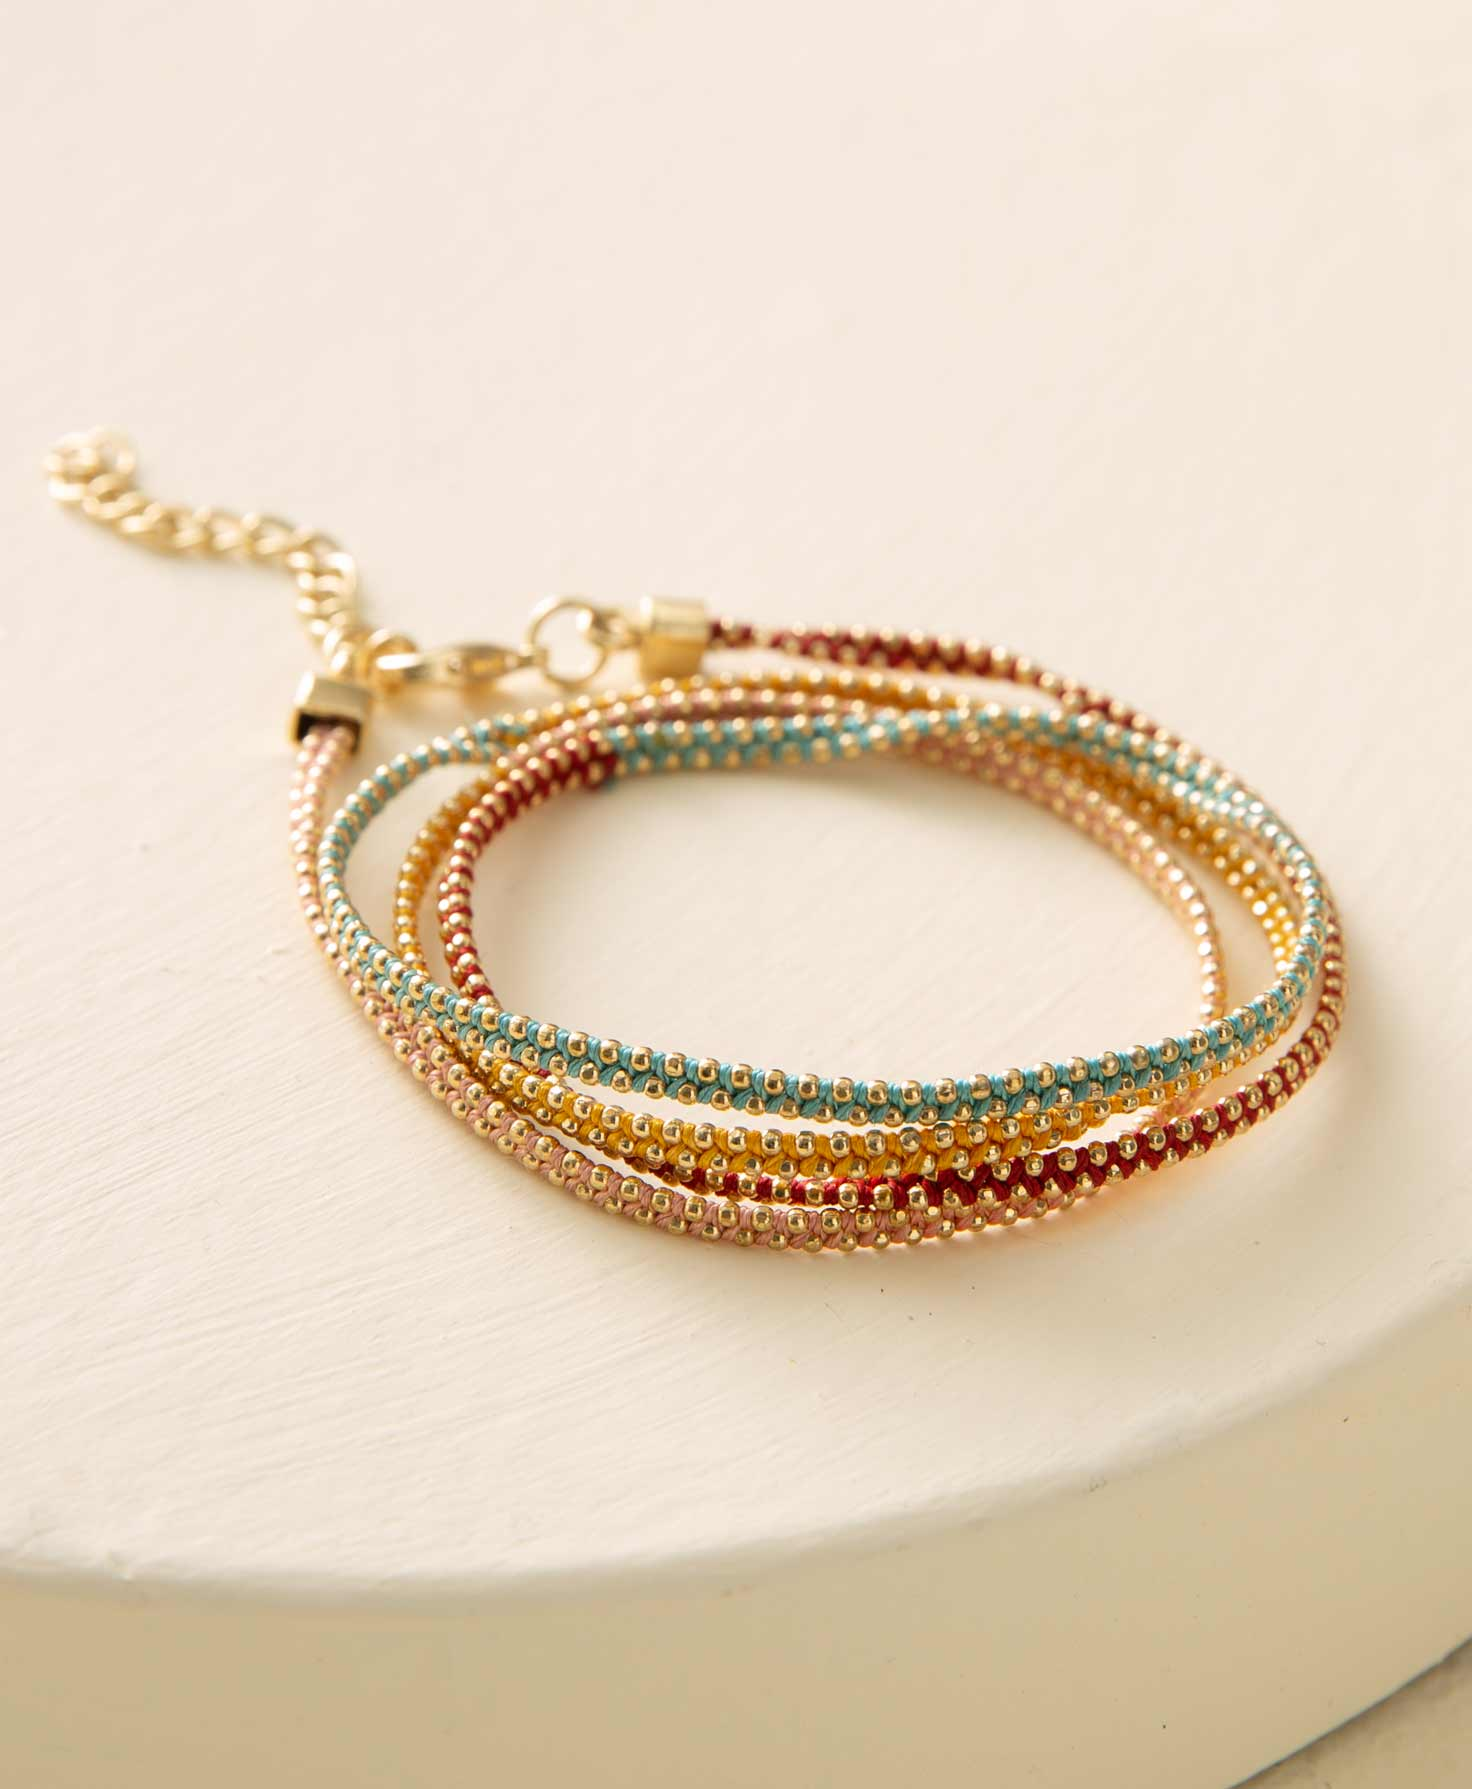 The Color Blocked Wrap Bracelet lays coiled on a white block. It is a dainty bracelet composed of many tiny, spherical brass beads interwoven with colored thread. There is a section with yellow thread, then a section with aqua thread, then a section with crimson thread. The bracelet ends in a golden chain with an extender for adjusting length.